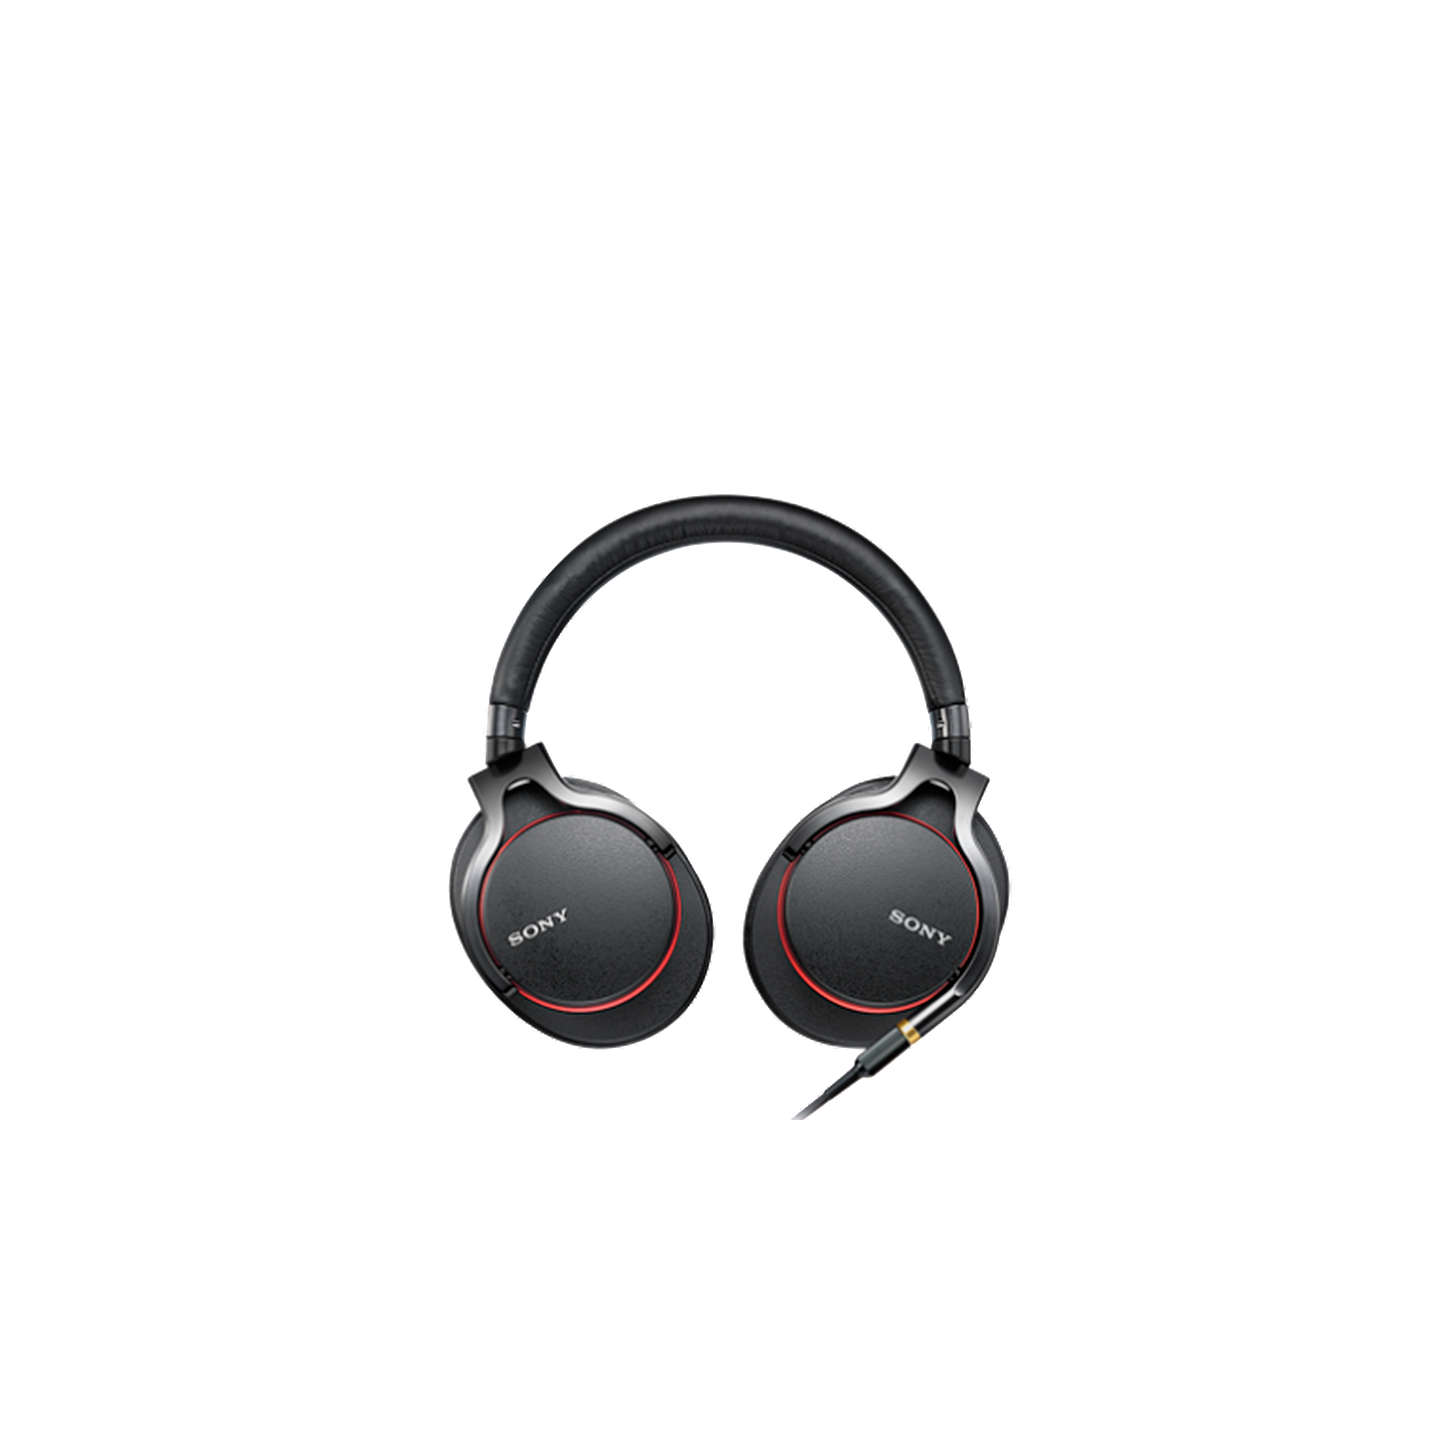 BuySony MDR-1A Over-Ear Headphones with Mic/Remote, Black Online at johnlewis.com